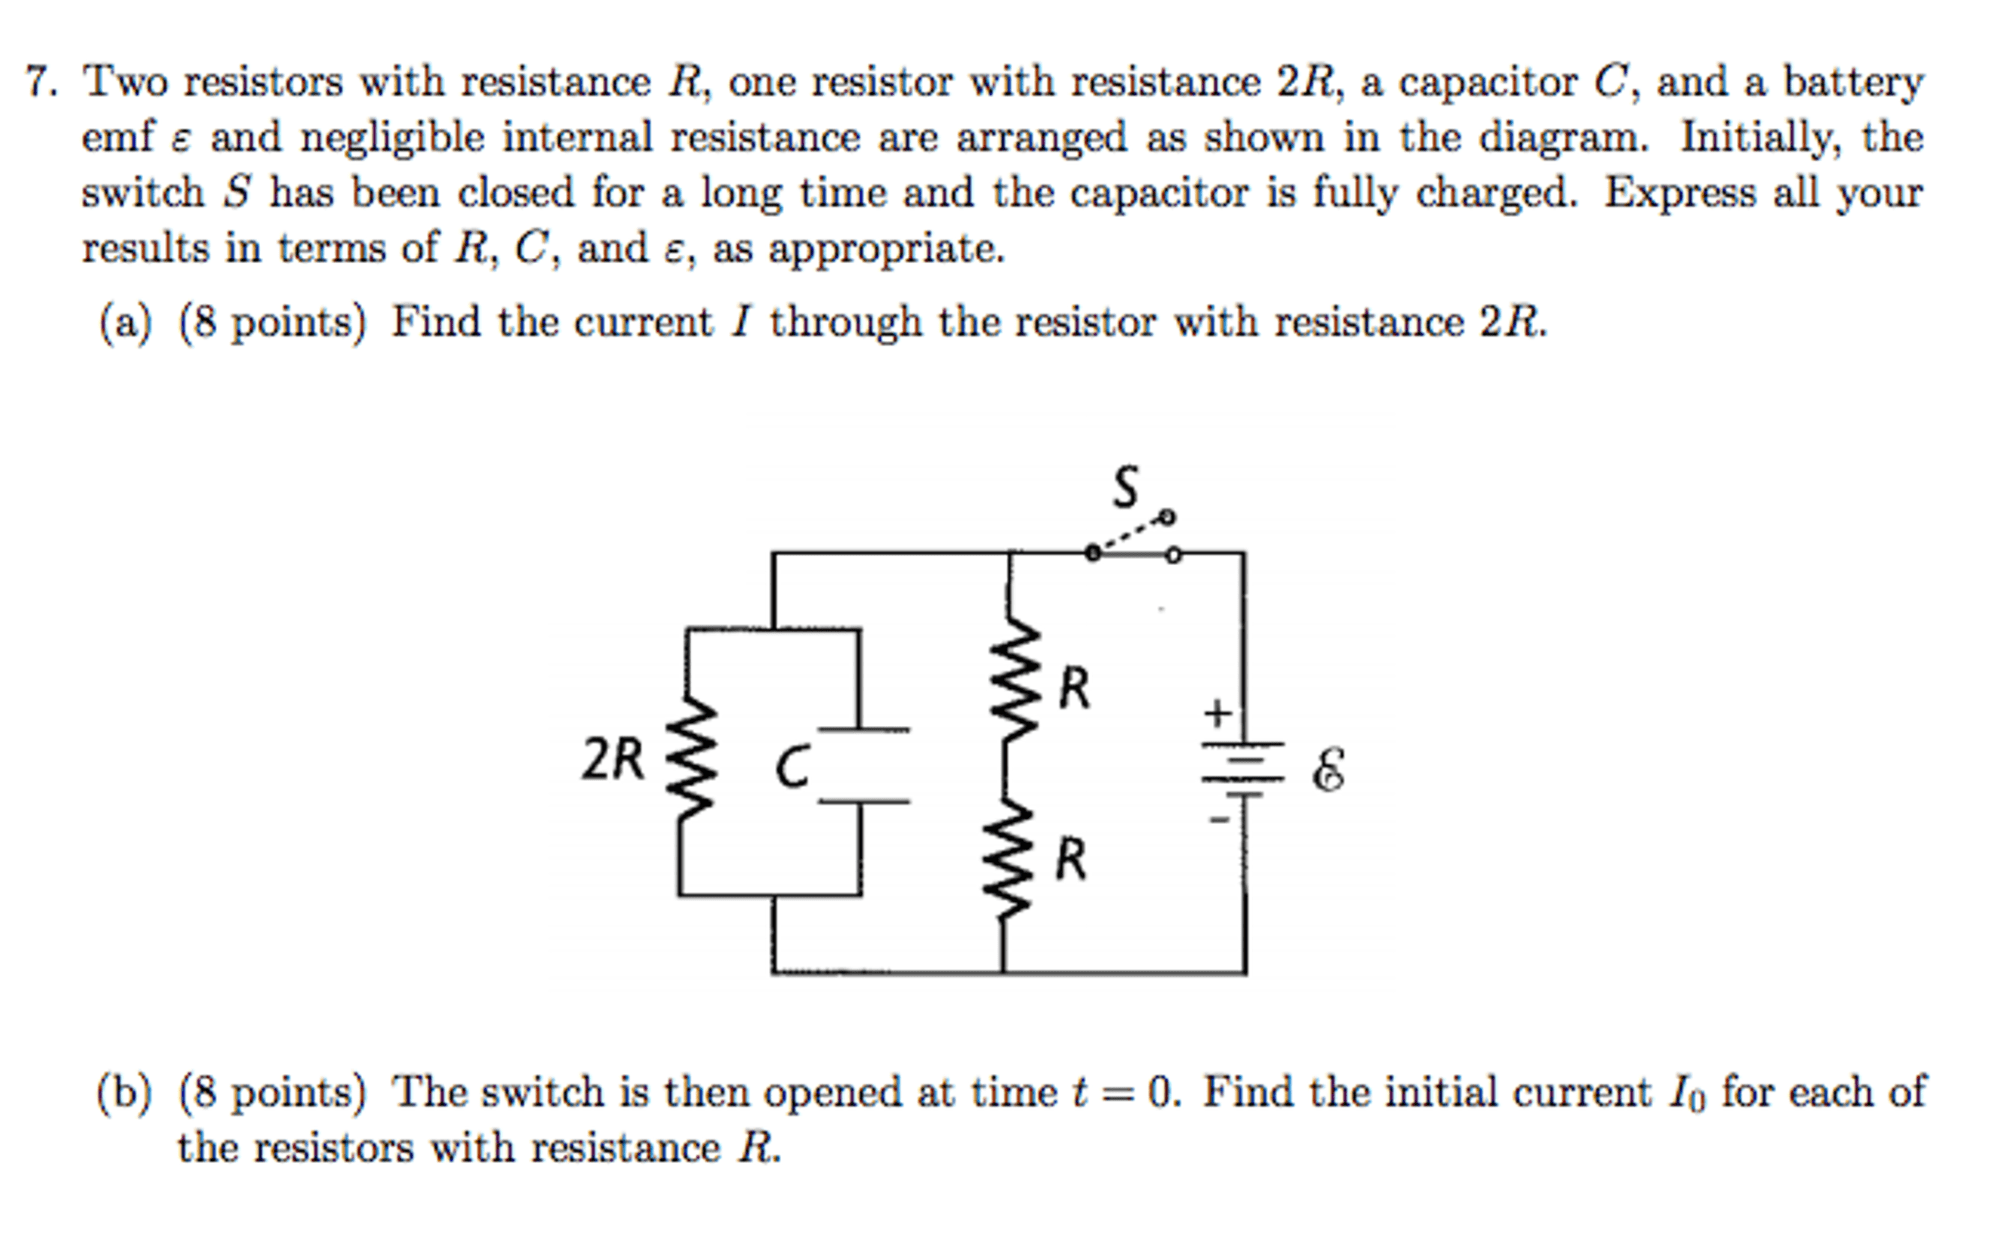 hight resolution of solved two resistors with resistance r one resistor with circuit diagram including a battery emf capacitor c a resistor